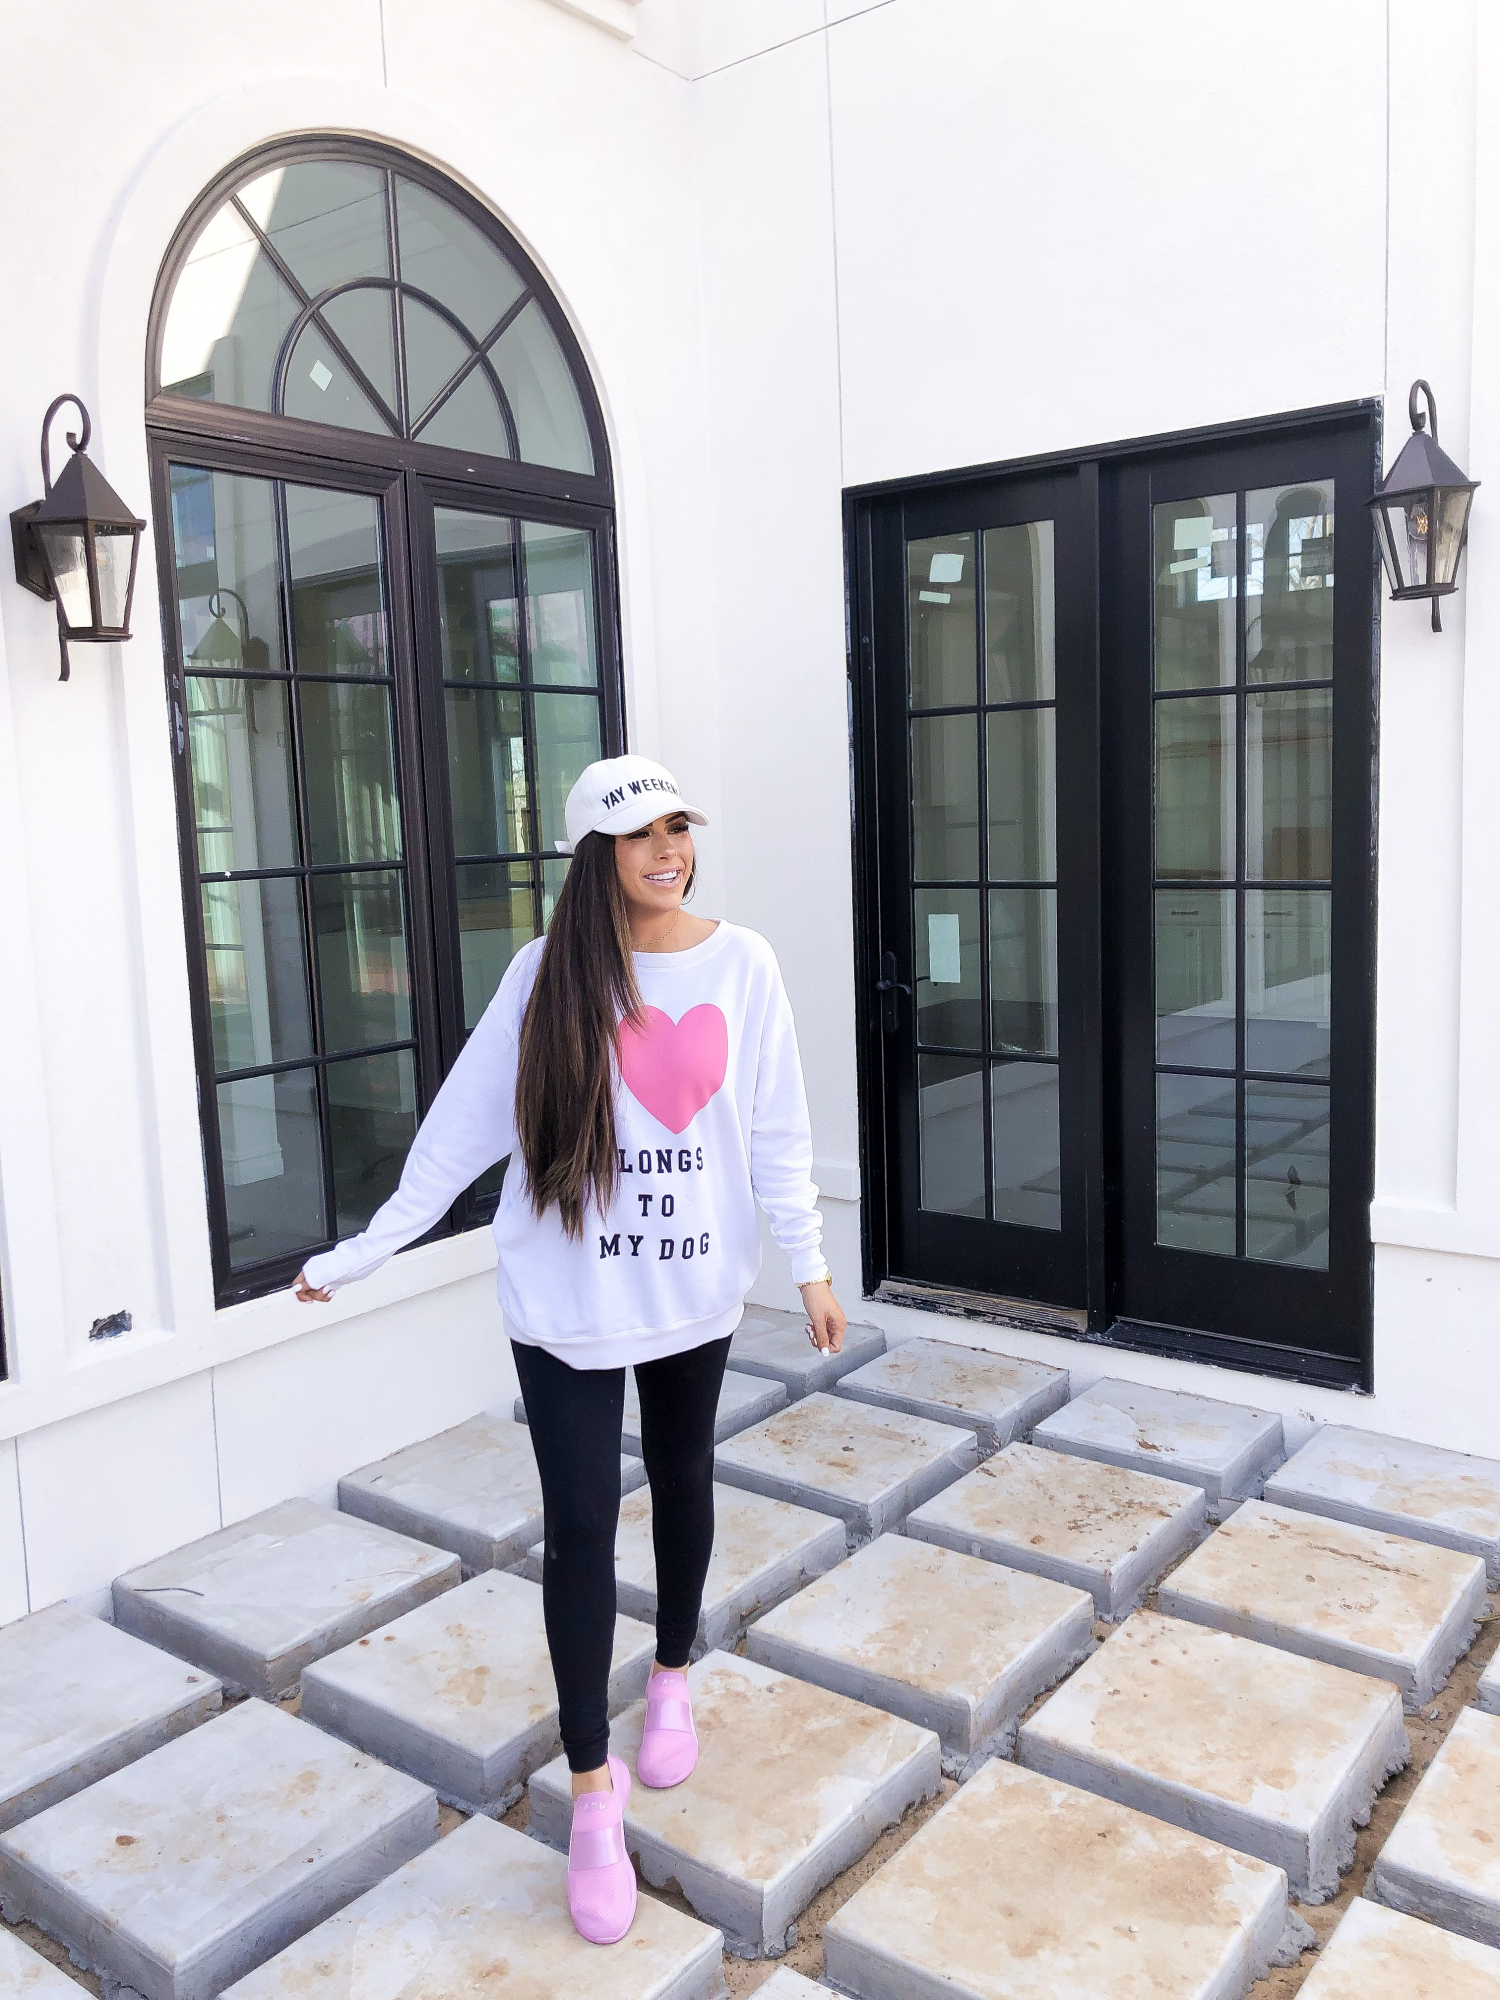 pink APL tennis shoes breast cancer awareness, pavers turf concrete, wildfox oversized sweatshirts, shopbop sale fall 2019, emily ann gemma | Major ShopBop Sale Alert‼️[25% Off My Most Popular Outfits!] by popular Oklahoma fashion blog, The Sweetest Thing: image of a woman wearing ShopBop wildfox sweatshirt and apl sneakers.